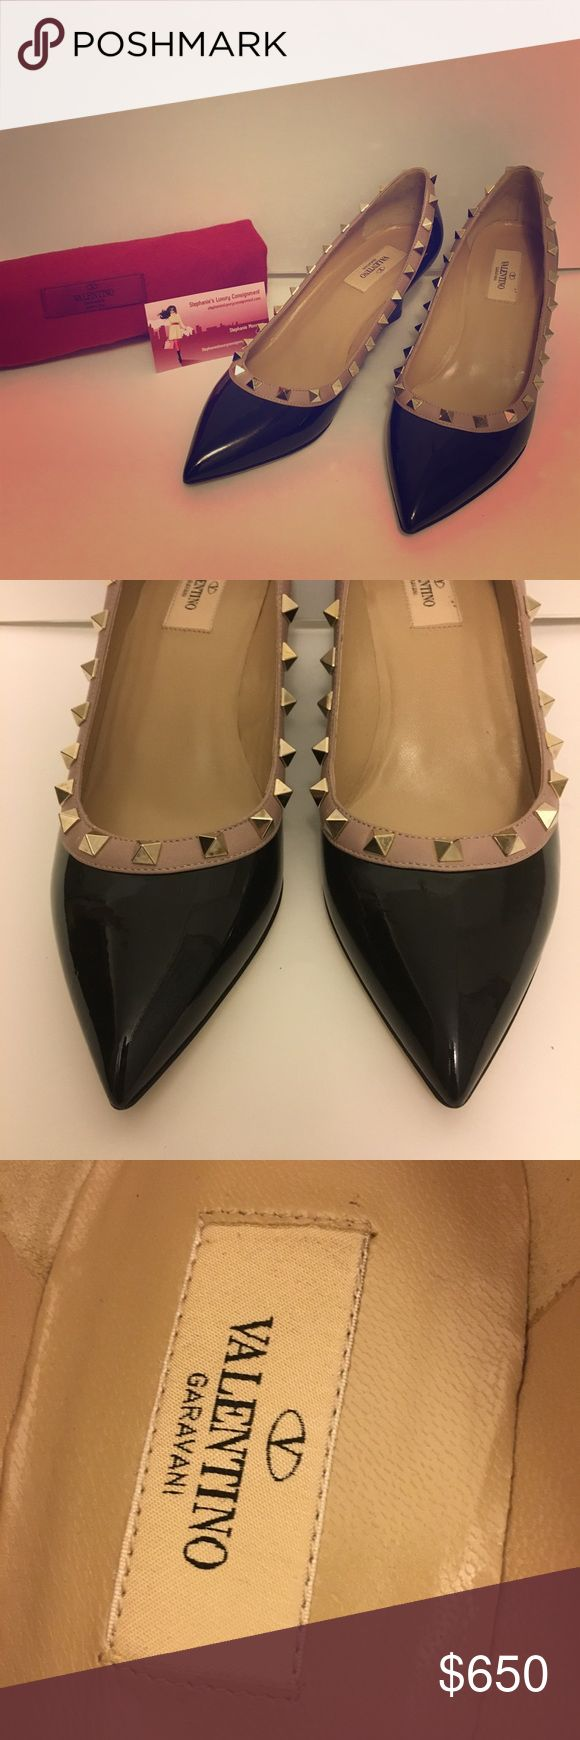 Valentino Rockstud Black Wedges 100% authentic gorgeous and like new Valentino Rockstud black wedges! Dustbag box included. Heel height is 2.8 inches. Total perfection- comfort, sassy and classy 😉 retail price is $895. Light scratches on studs from storage. Never worn only tried on. Light white scuff mark on right shoe as seen in picture. Not really visible but wanted to disclose:) no trades Valentino Shoes Wedges